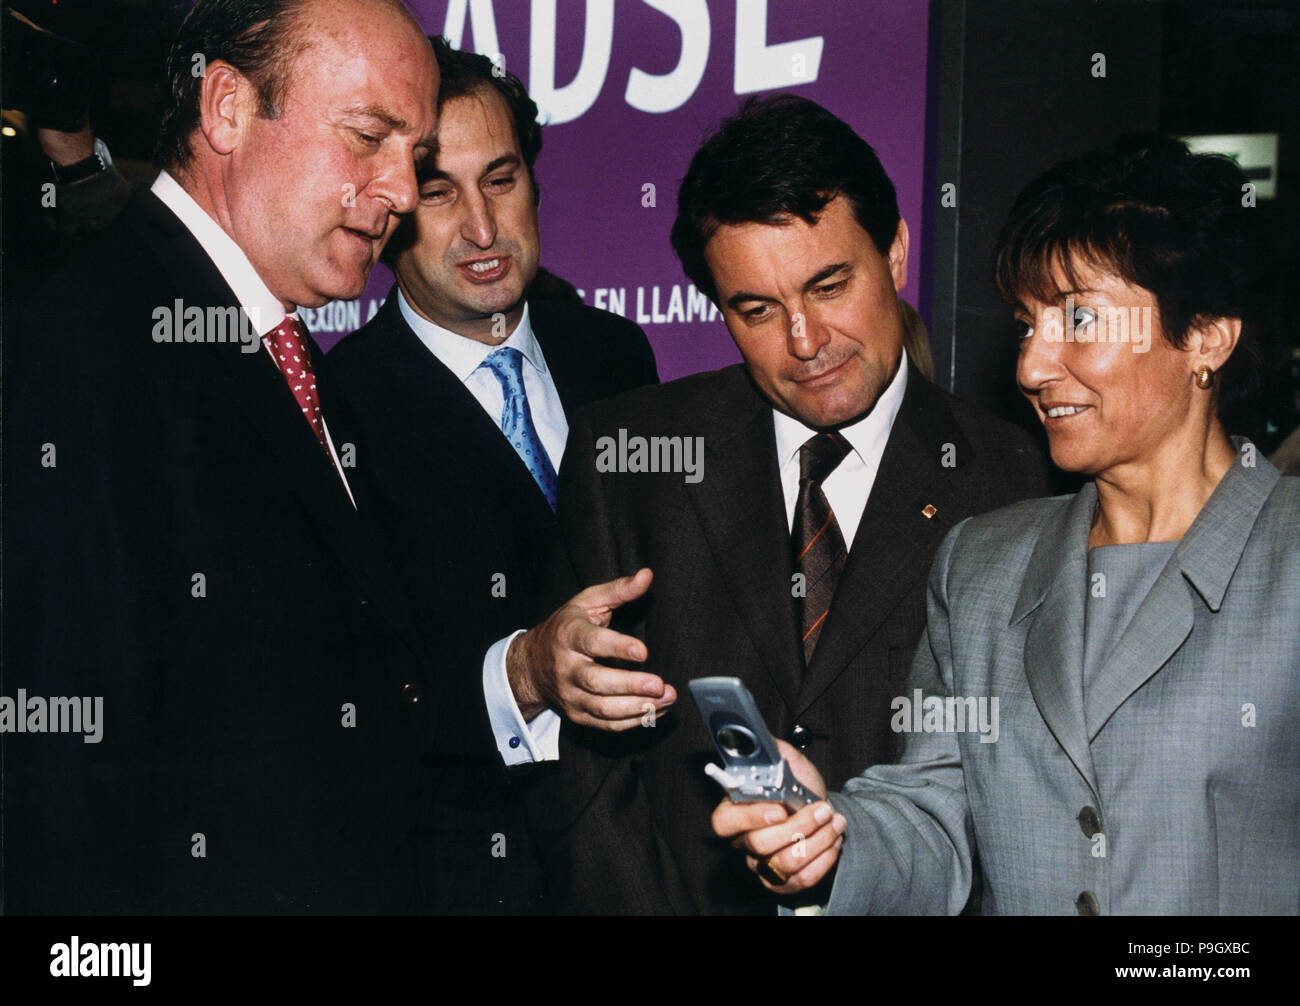 Ana Birulés i Bertran (1954 -). Spanish politician, Minister of Science and Technology, with Artur Mas and Enric Lacalle. - Stock Image